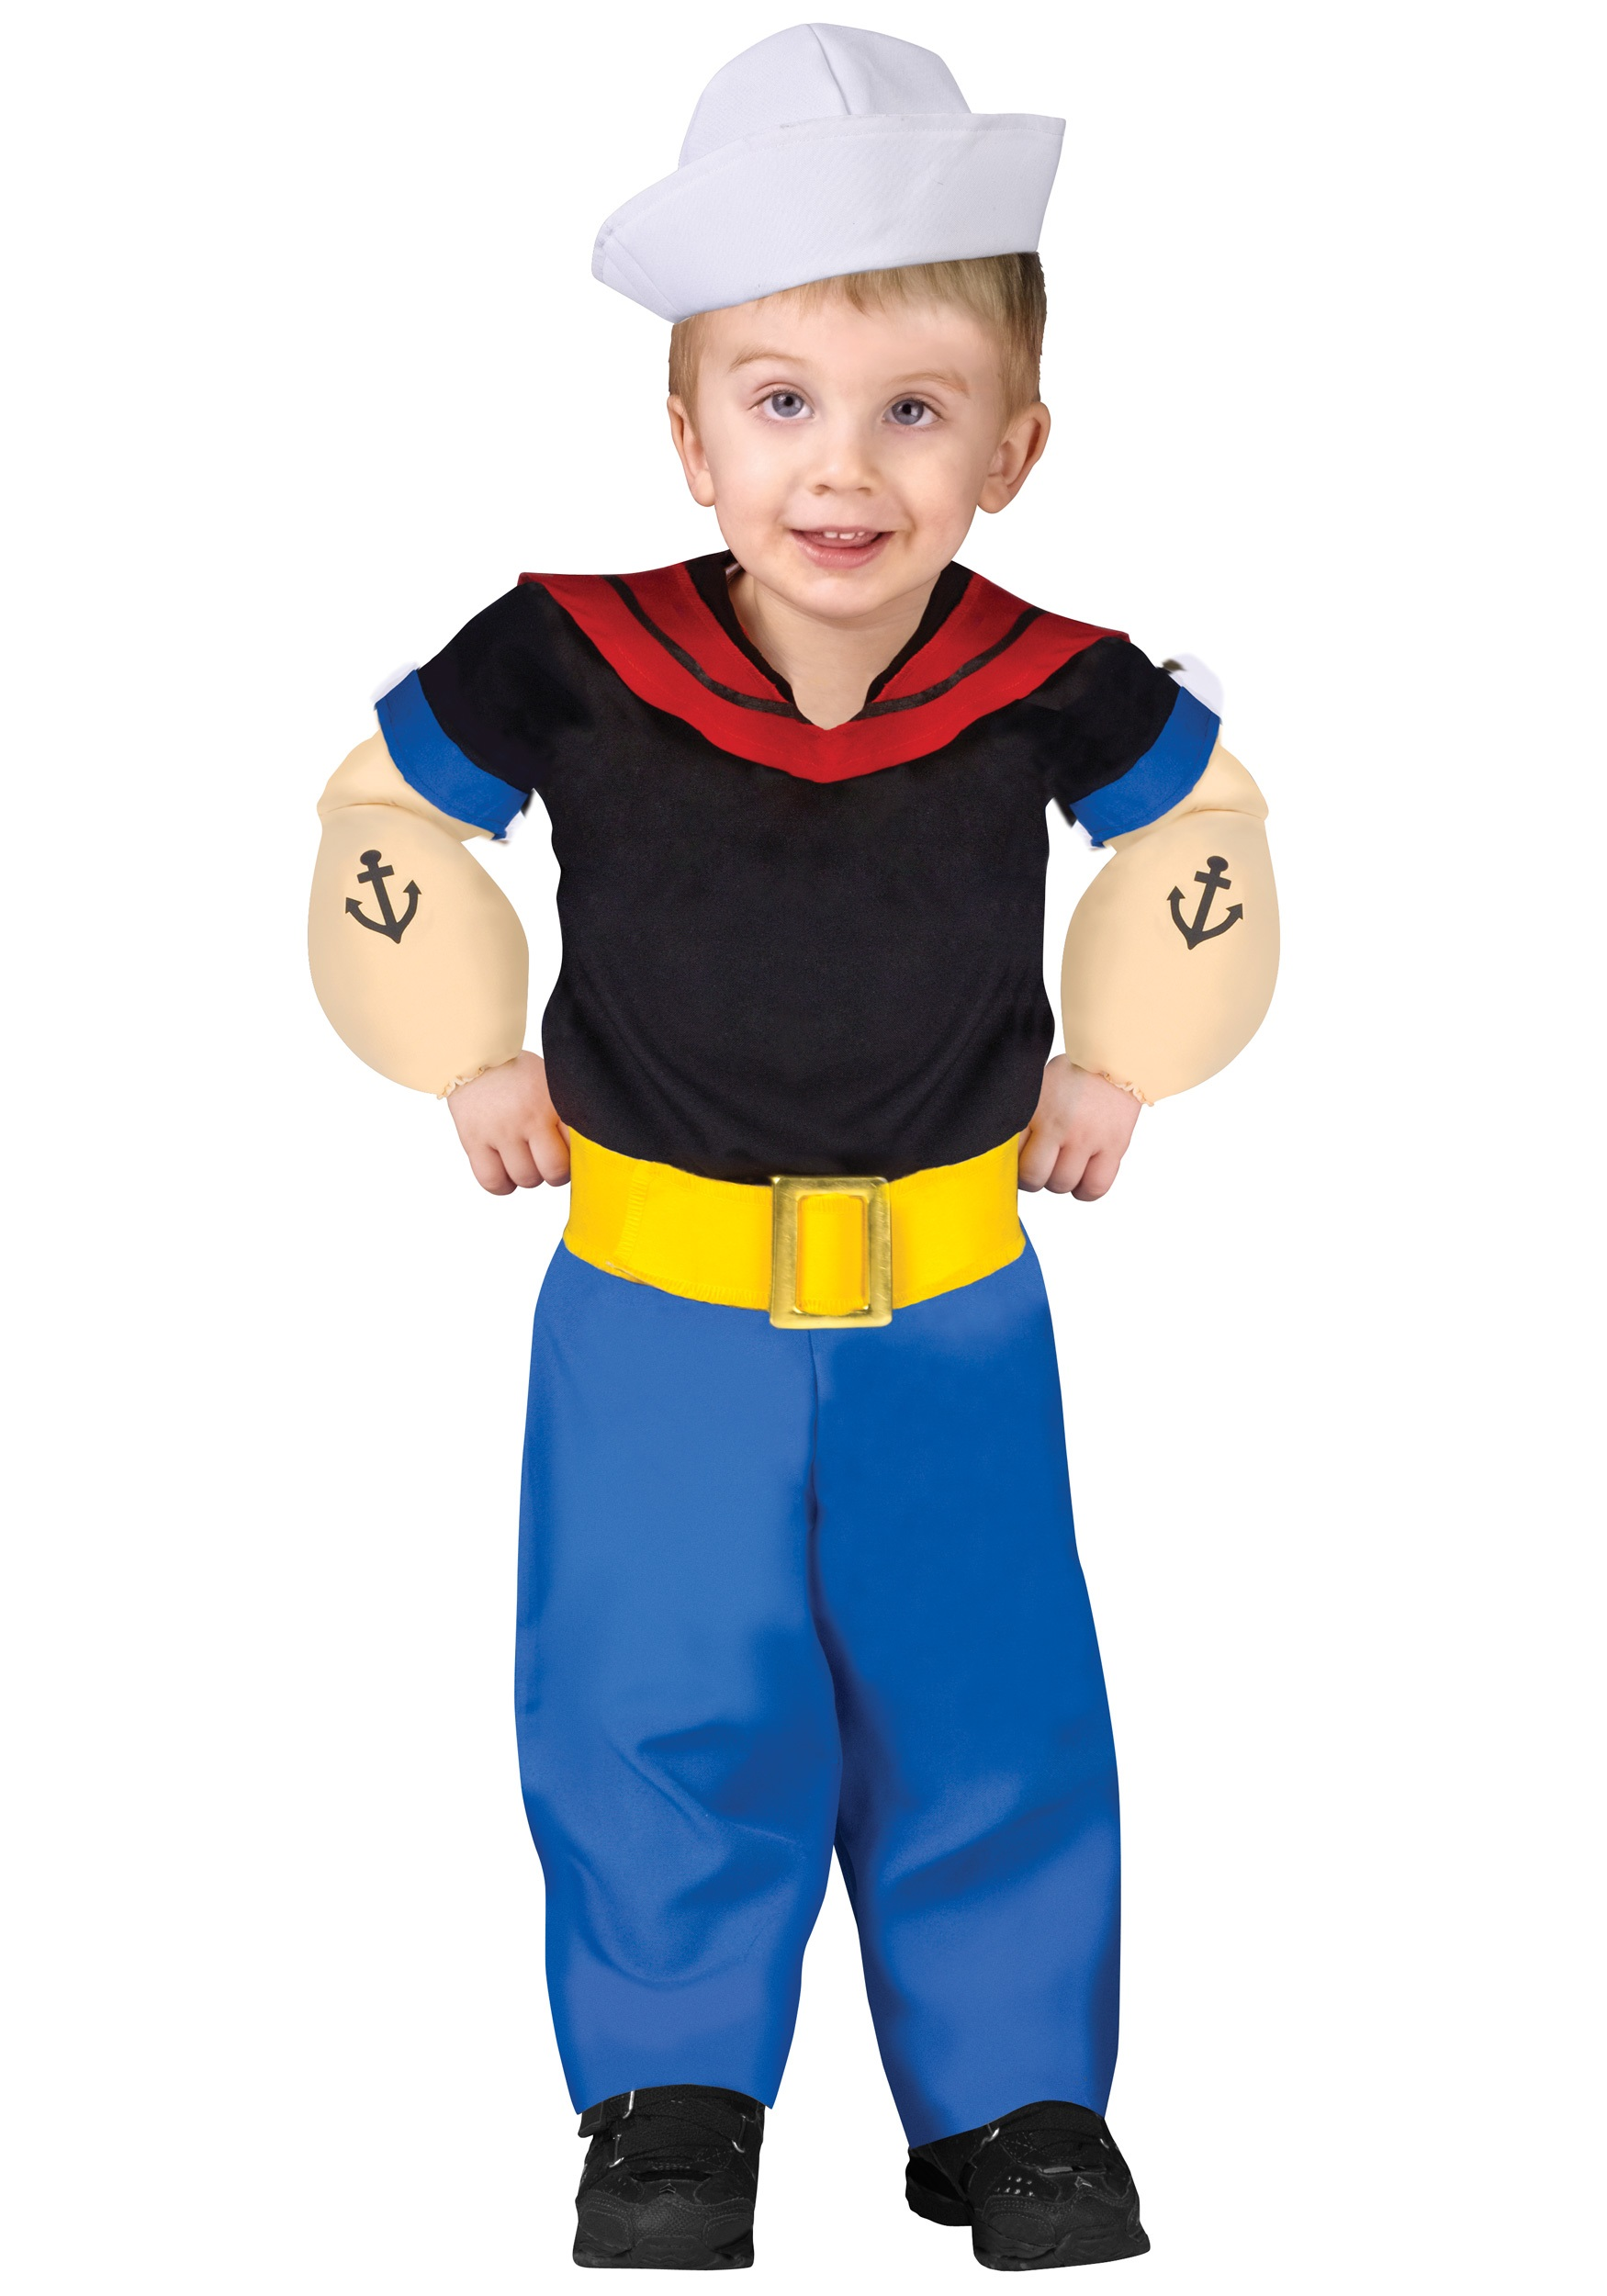 Sailor costumes navy officer uniforms halloweencostumes toddler popeye costume solutioingenieria Image collections